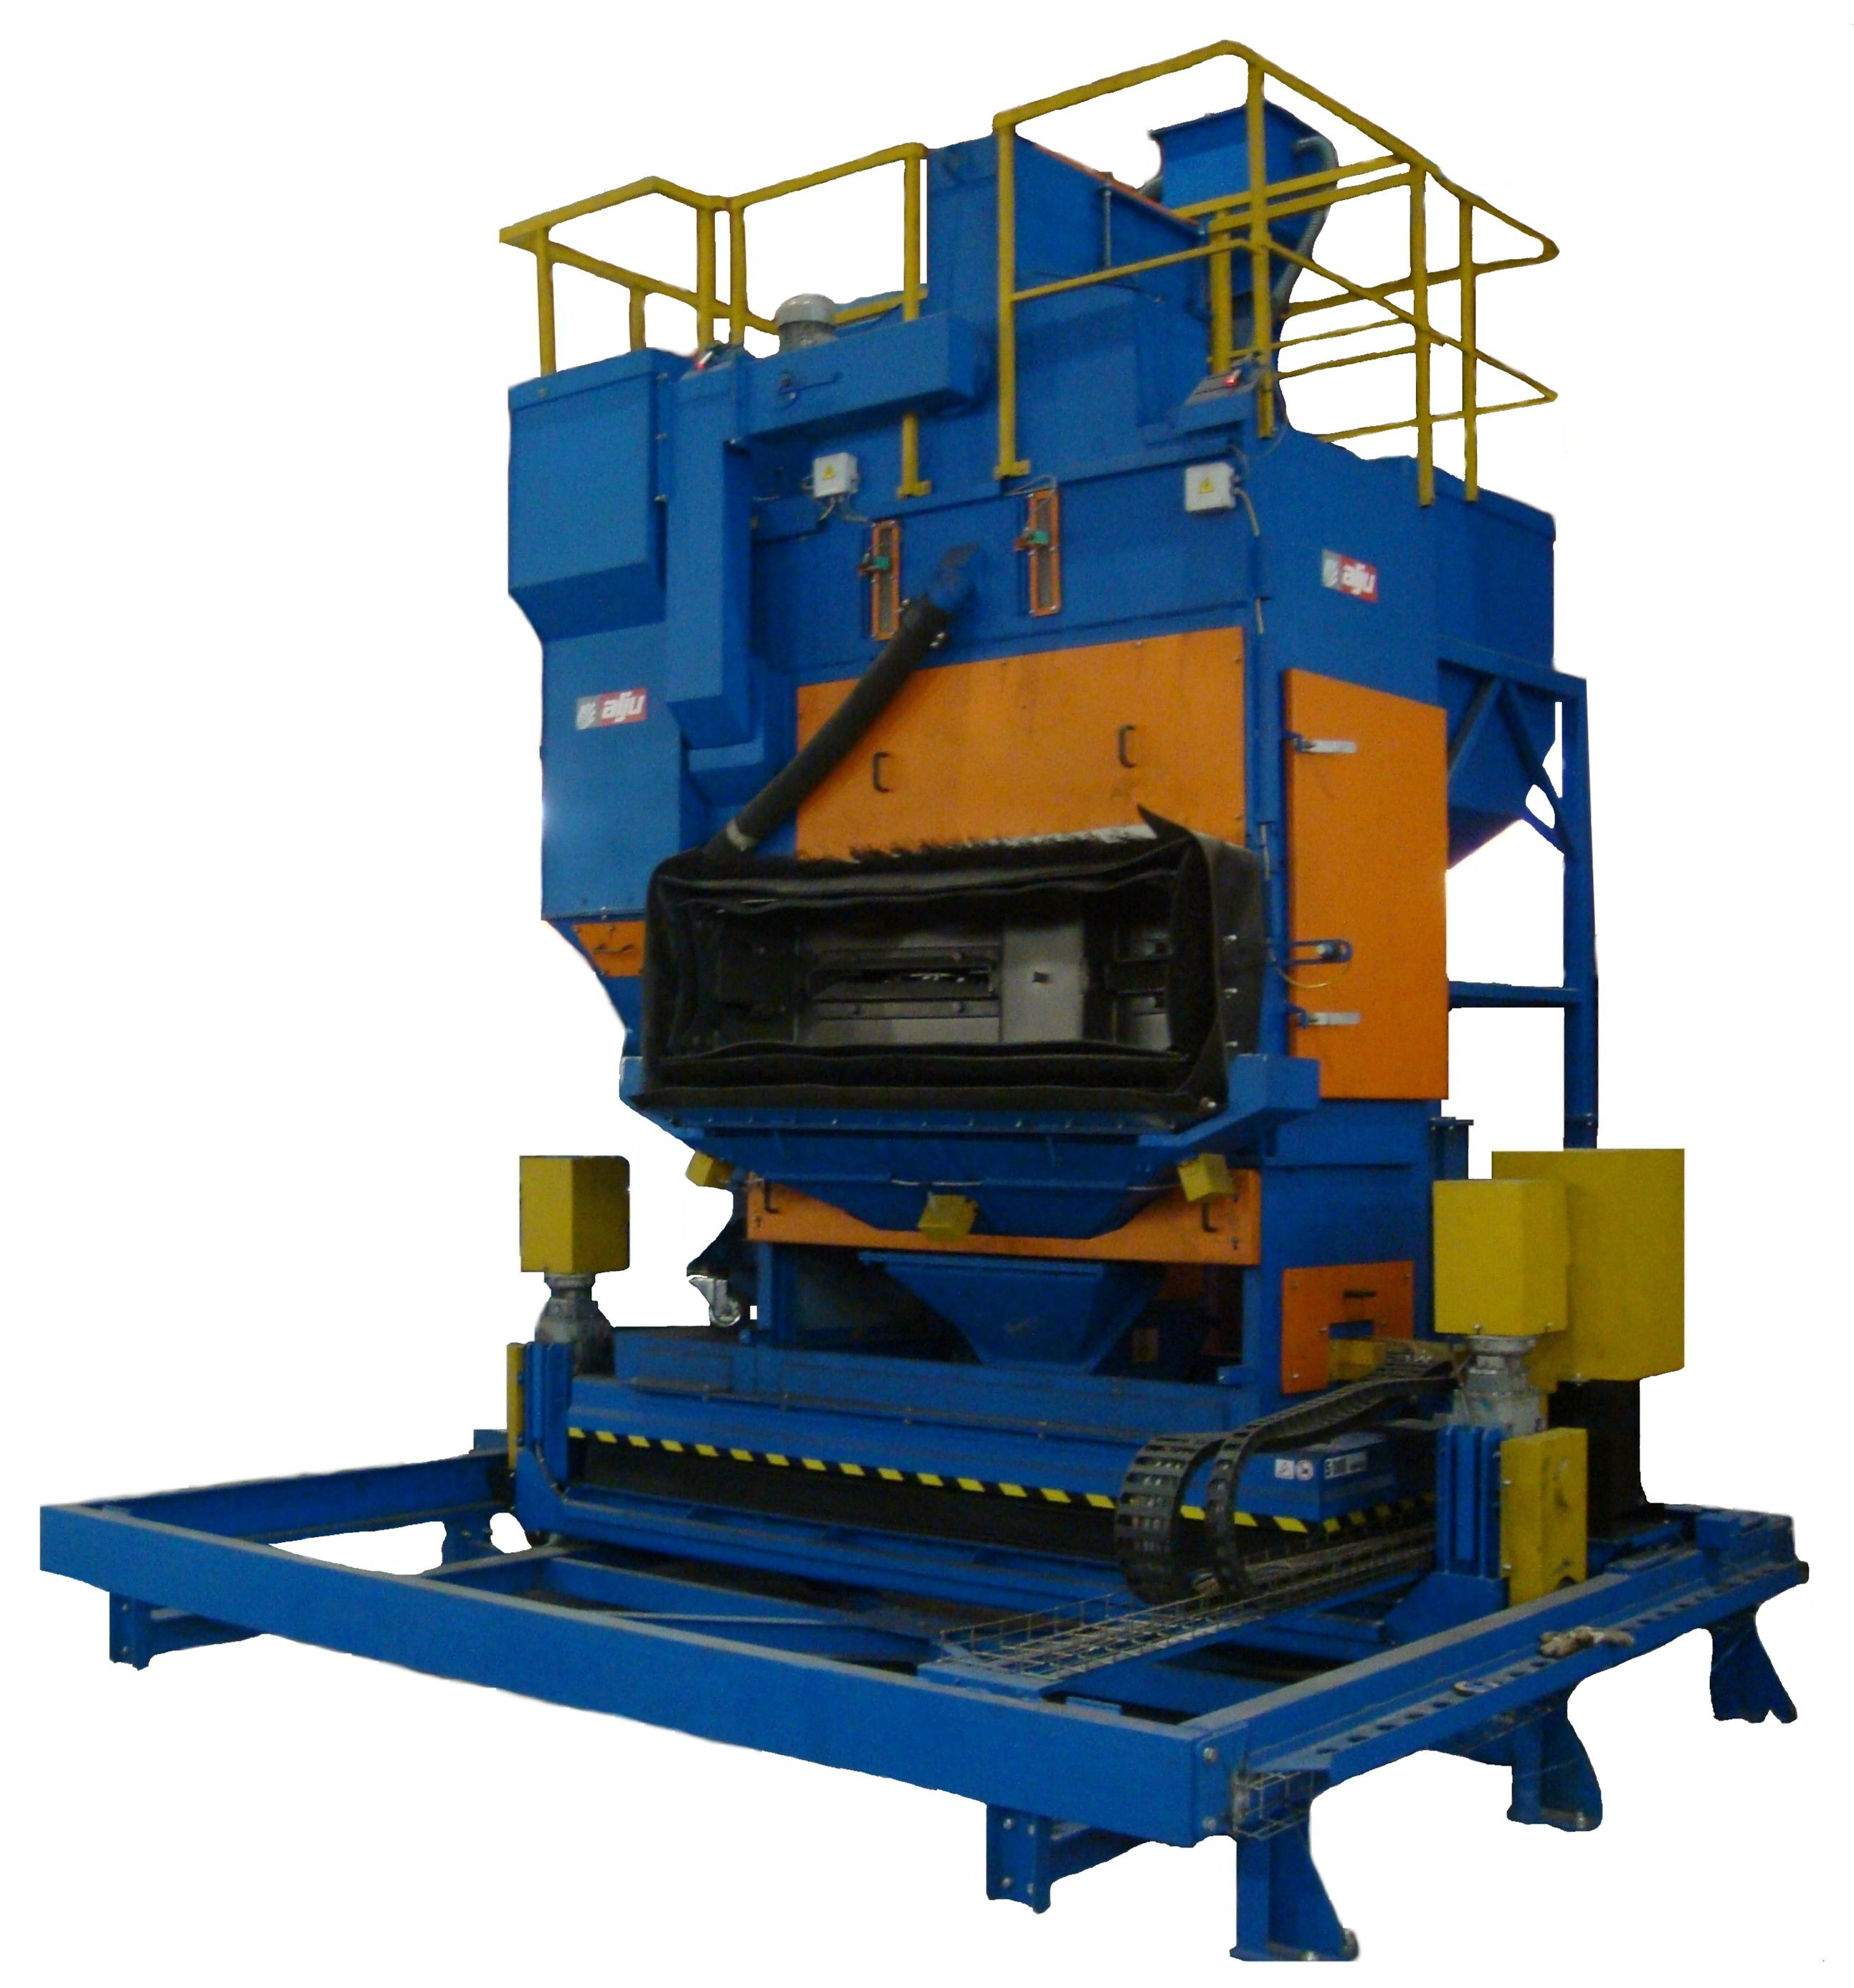 SHOT BLASTING MACHINE 'ALJUWIND'